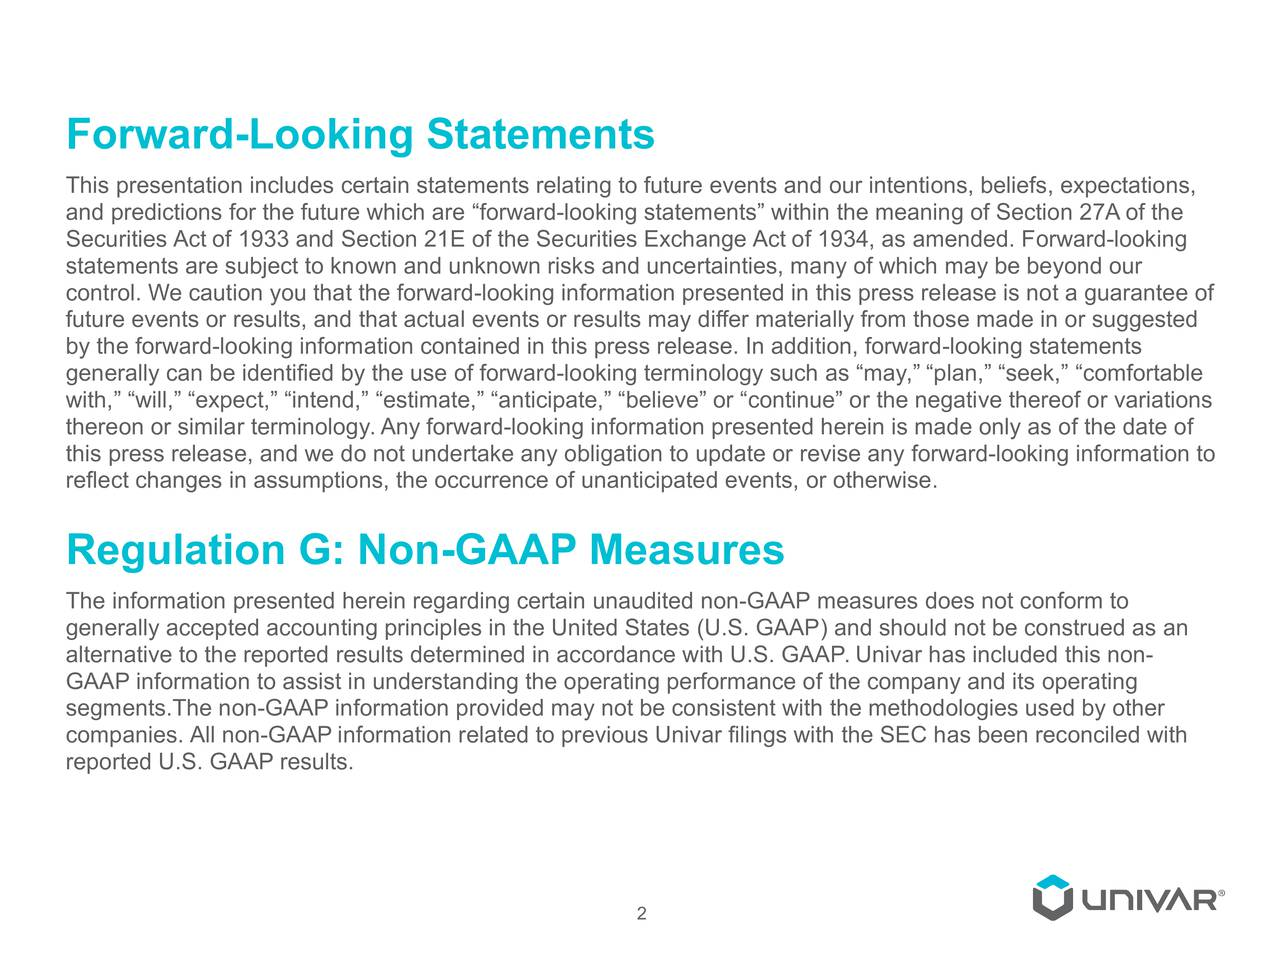 This presentation includes certain statements relating to future events and our intentions, beliefs, expectations, and predictions for the future which are forward-looking statements within the meaning of Section 27A of the Securities Act of 1933 and Section 21E of the Securities Exchange Act of 1934, as amended. Forward-looking statements are subject to known and unknown risks and uncertainties, many of which may be beyond our control. We caution you that the forward-looking information presented in this press release is not a guarantee of future events or results, and that actual events or results may differ materially from those made in or suggested by the forward-looking information contained in this press release. In addition, forward-looking statements generally can be identified by the use of forward-looking terminology such as may, plan, seek, comfortable with, will, expect, intend, estimate, anticipate, believe or continue or the negative thereof or variations thereon or similar terminology. Any forward-looking information presented herein is made only as of the date of this press release, and we do not undertake any obligation to update or revise any forward-looking information to reflect changes in assumptions, the occurrence of unanticipated events, or otherwise. Regulation G: Non-GAAP Measures The information presented herein regarding certain unaudited non-GAAP measures does not conform to generally accepted accounting principles in the United States (U.S. GAAP) and should not be construed as an alternative to the reported results determined in accordance with U.S. GAAP. Univar has included this non- GAAP information to assist in understanding the operating performance of the company and its operating segments.The non-GAAP information provided may not be consistent with the methodologies used by other companies. All non-GAAP information related to previous Univar filings with the SEC has been reconciled with reported U.S. GAAP results. 2